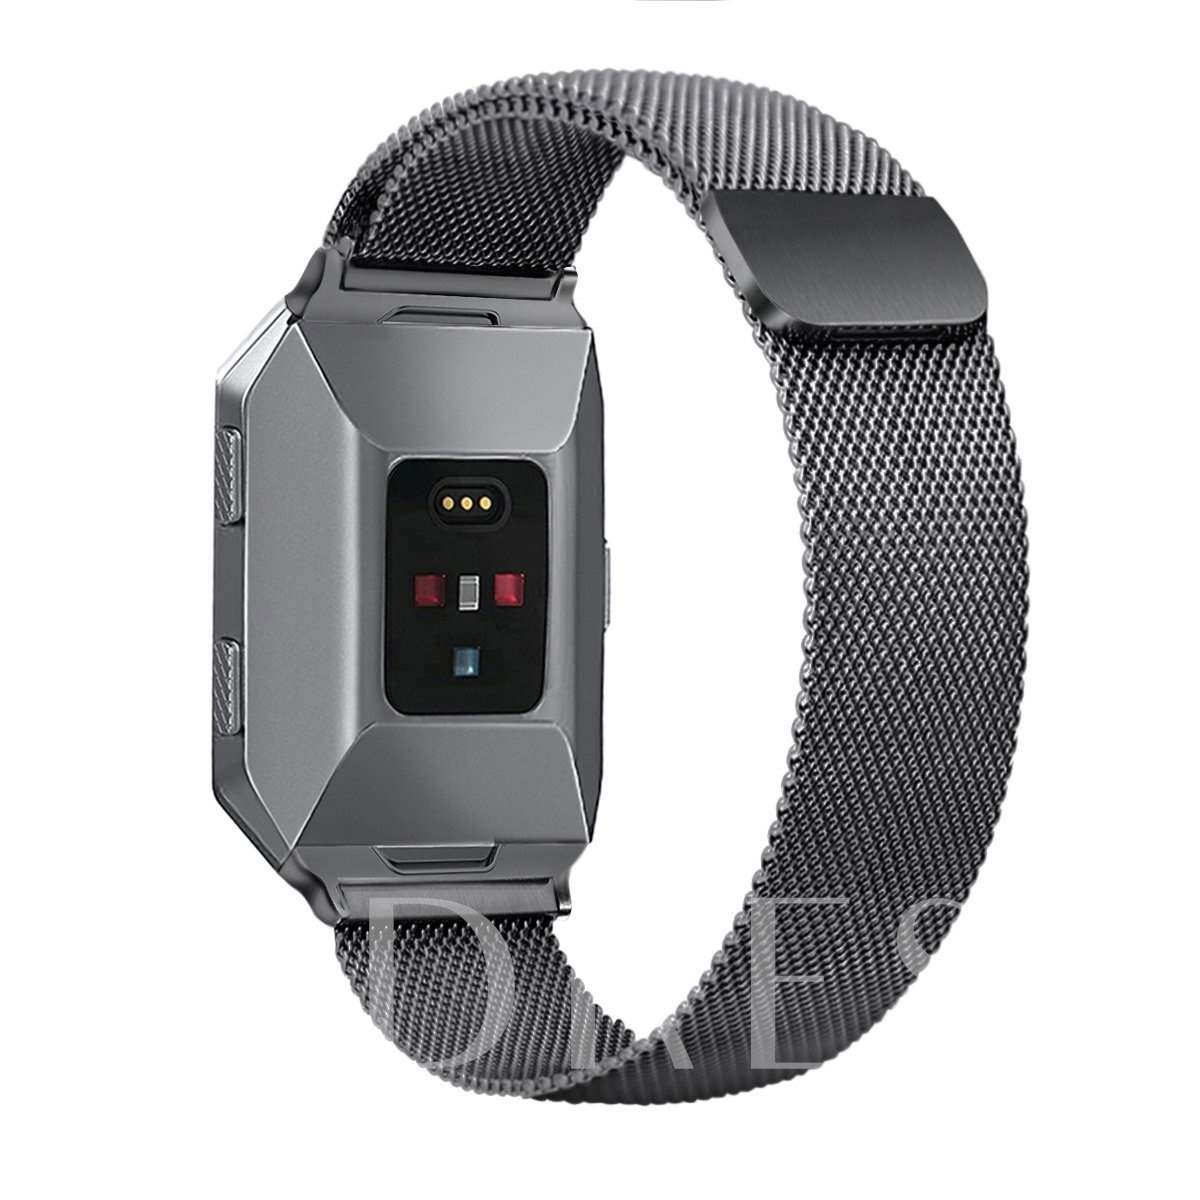 Fitbit Stainless Steel Watch Band Replacement for Fitbit Ionic